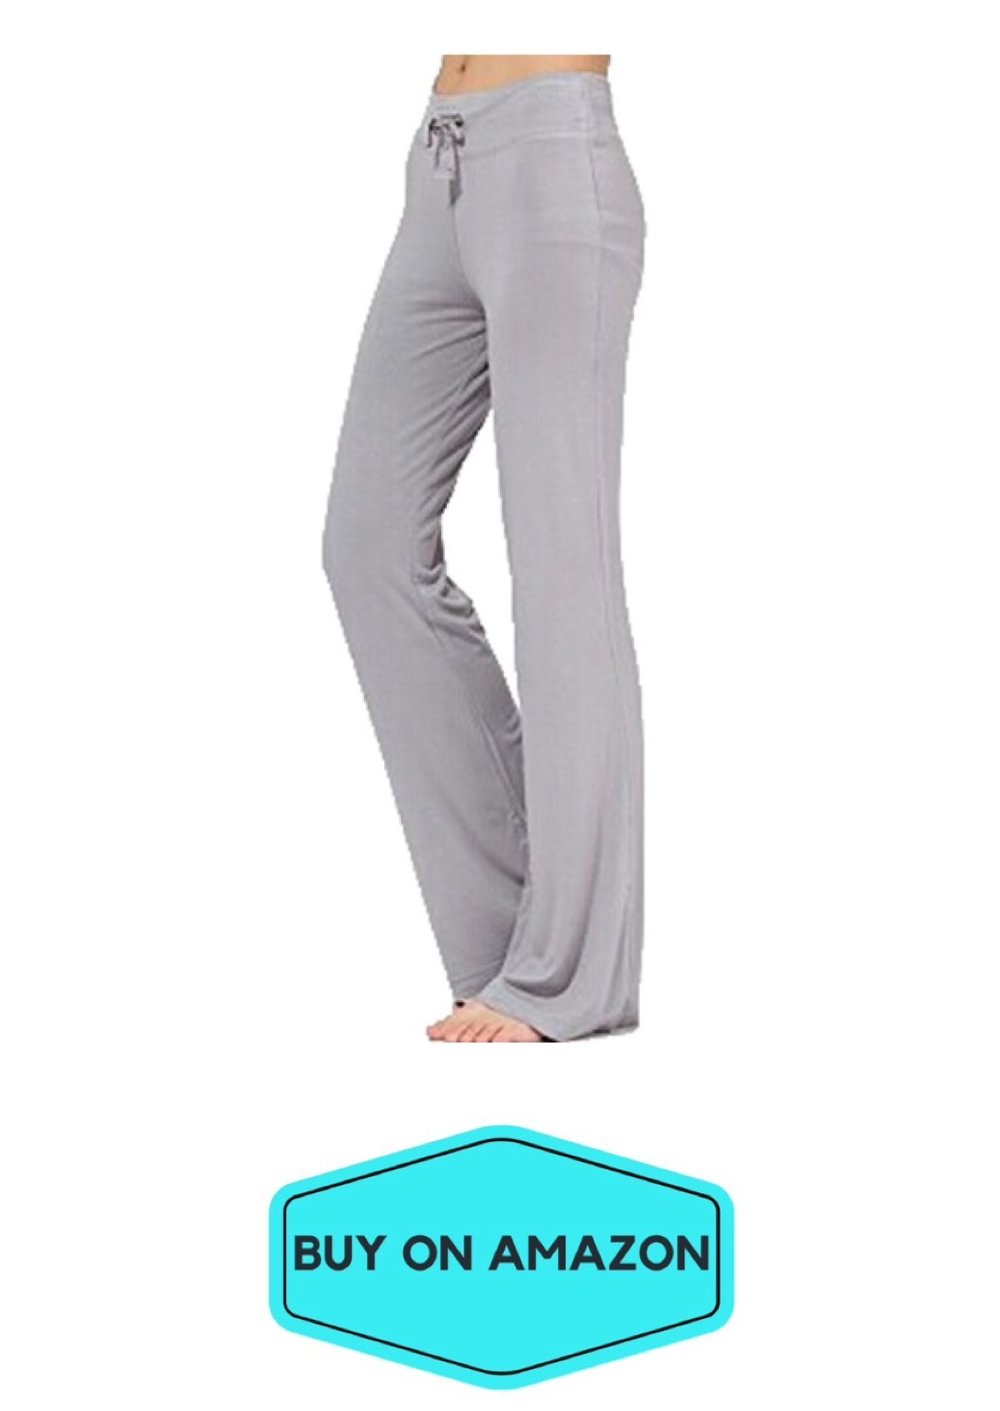 Loose Yoga Trouser Pants